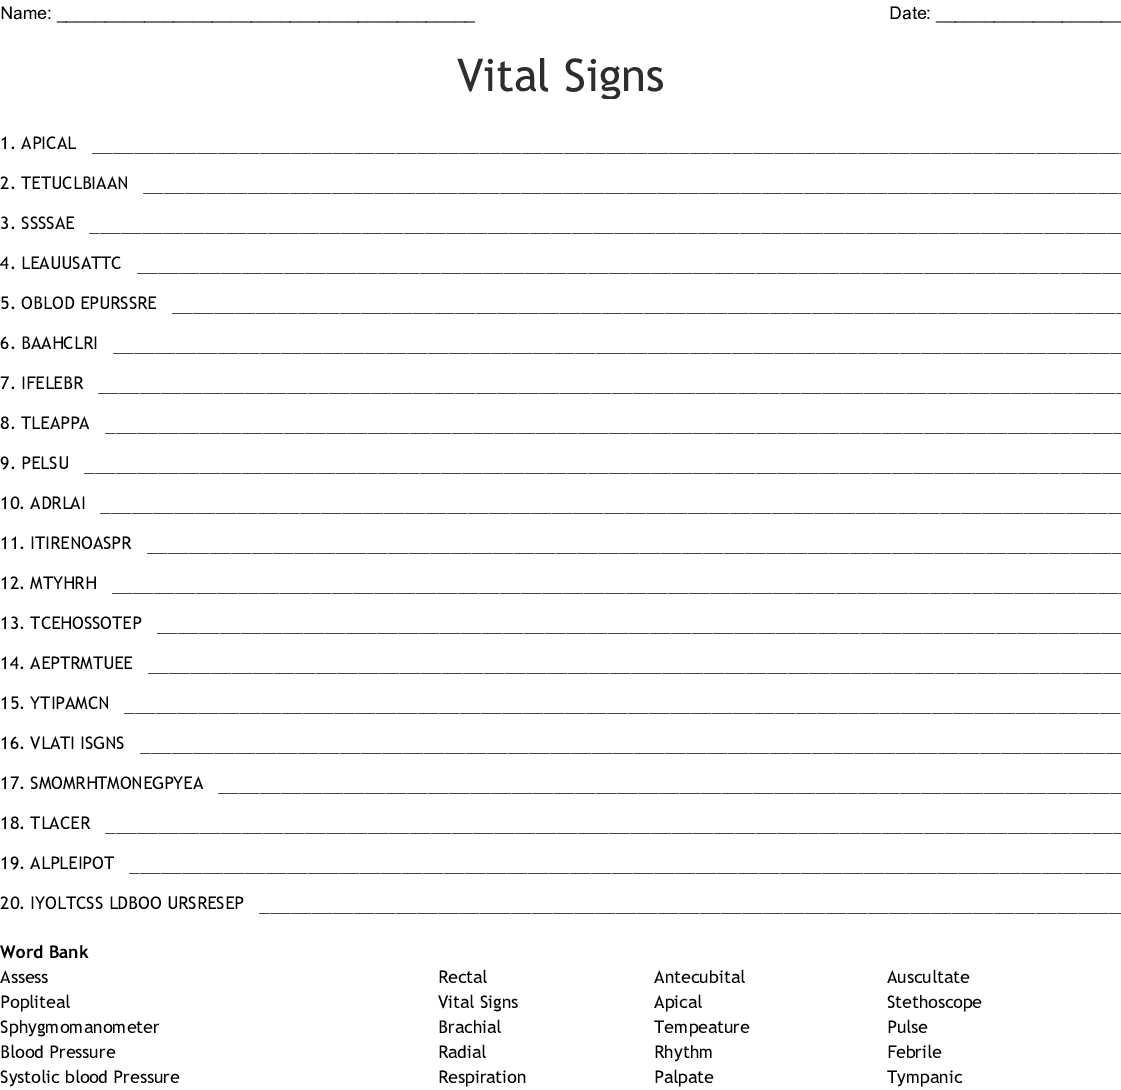 Vital Signs Word Search